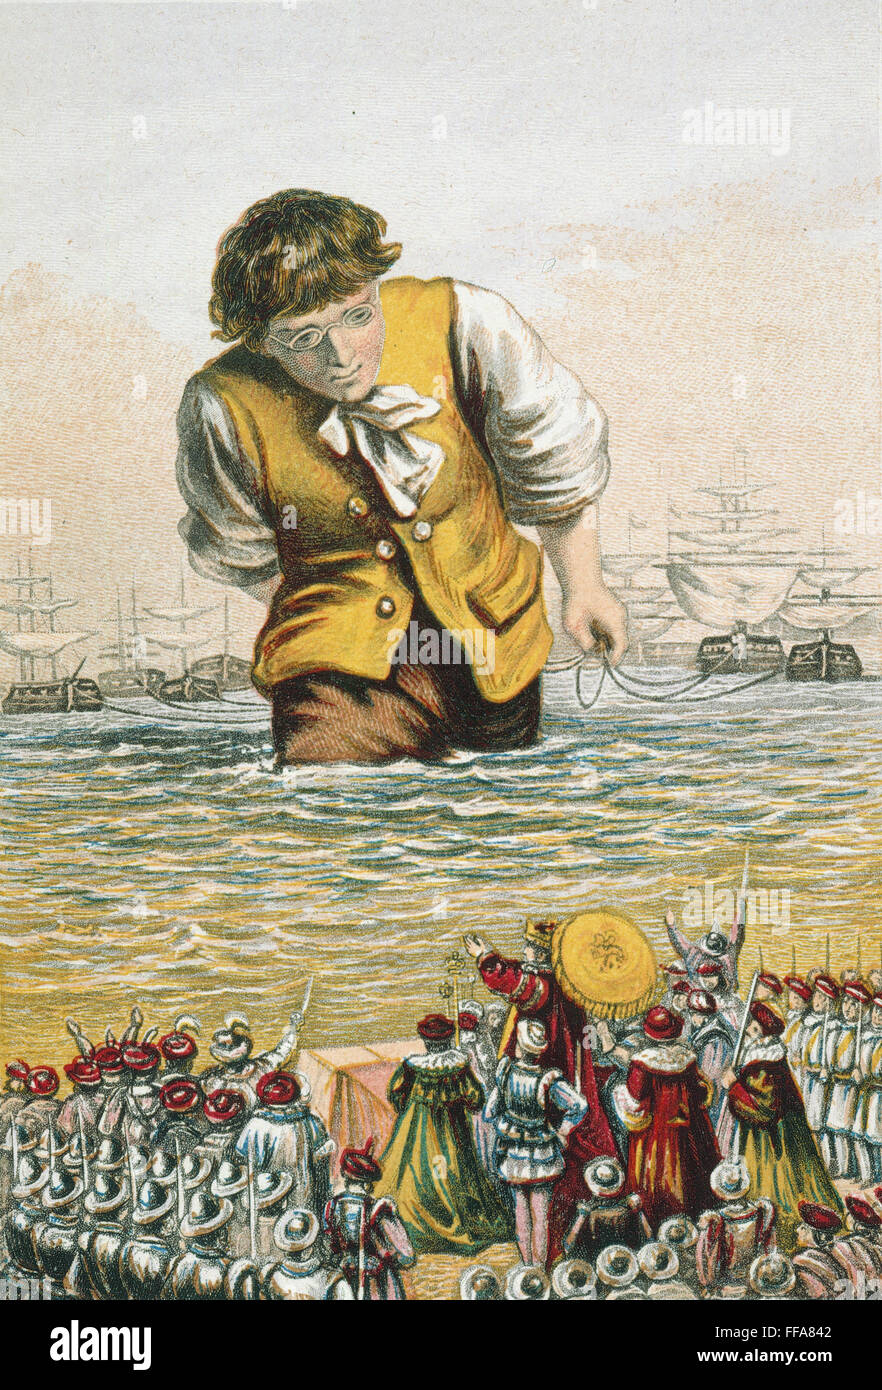 the journey of gulliver in houynhnmland in jonathan swifts gullivers travels On those travels gulliver's journey in lilliput  jonathan swifts gullivers travels gulliver in  gulliver in houynhnmland one of the.